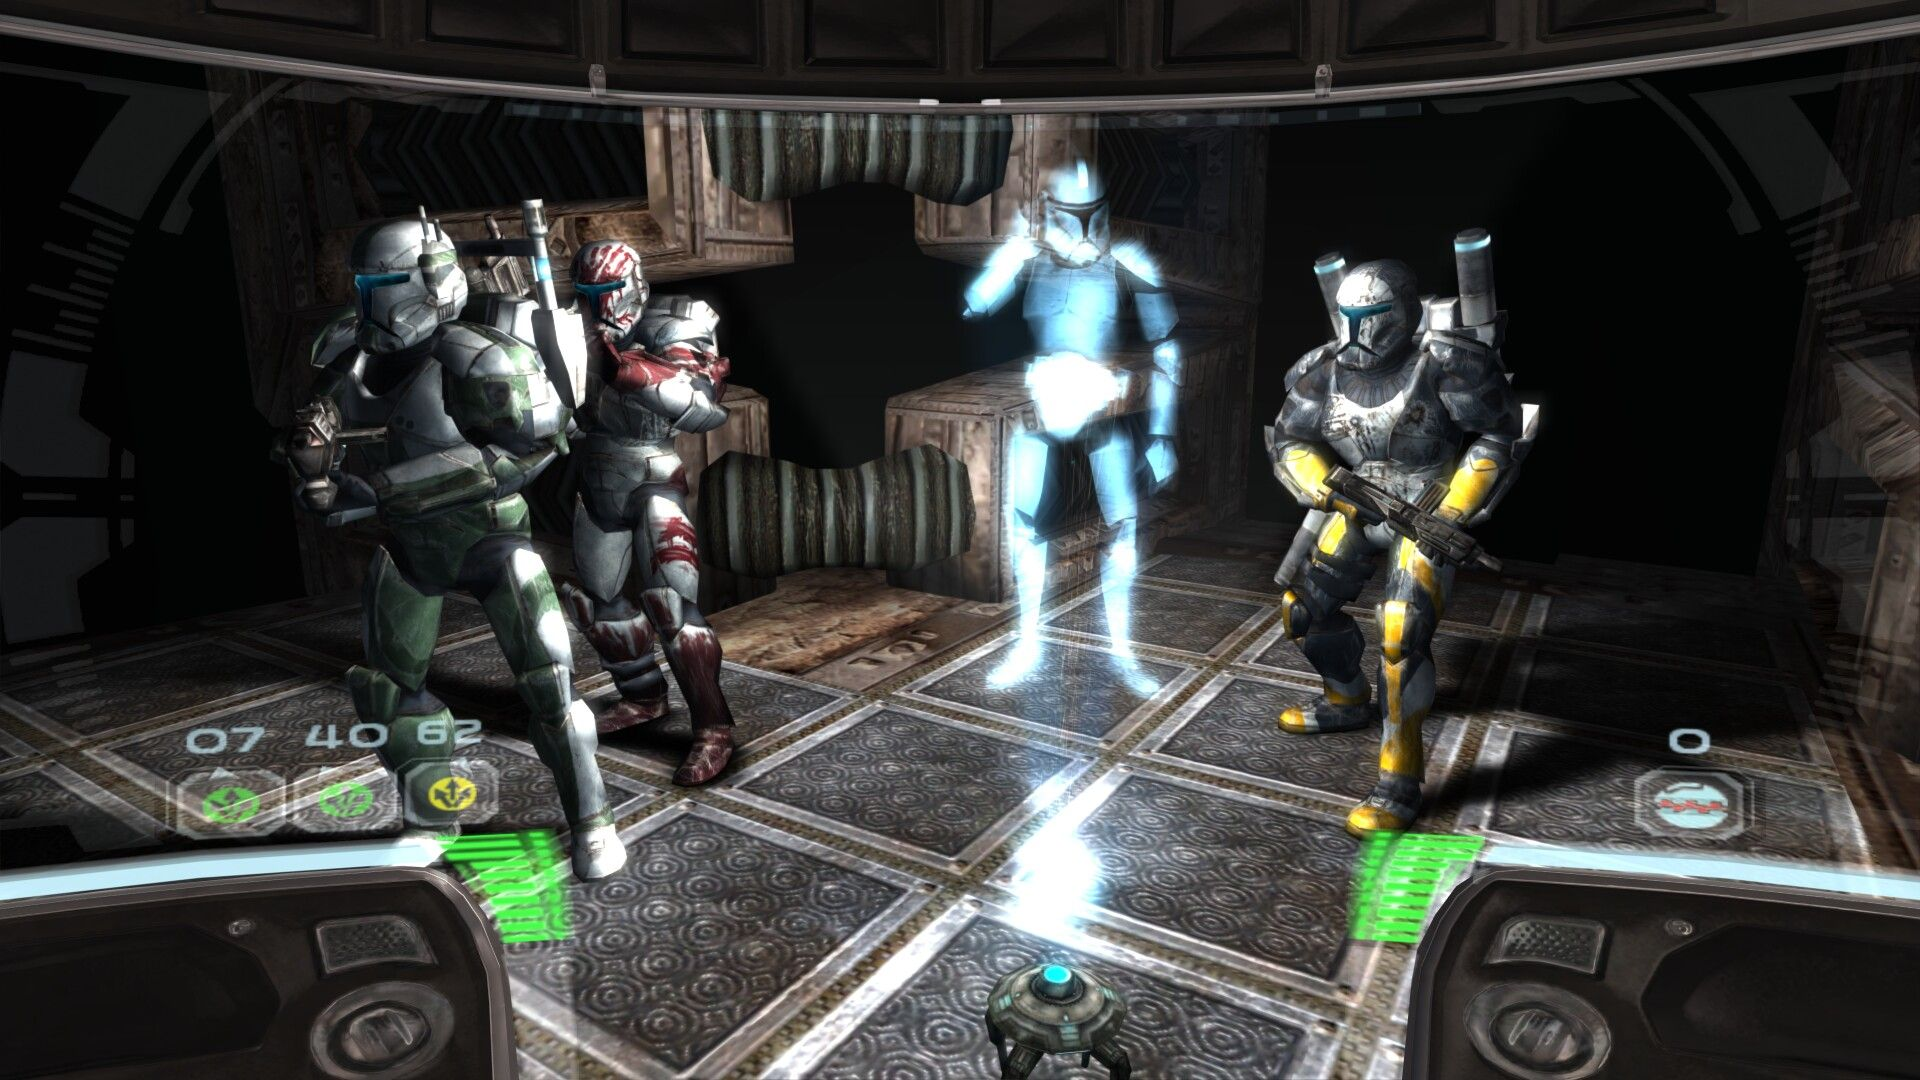 Stars Wars Republic Commando: One of the finest Star Wars